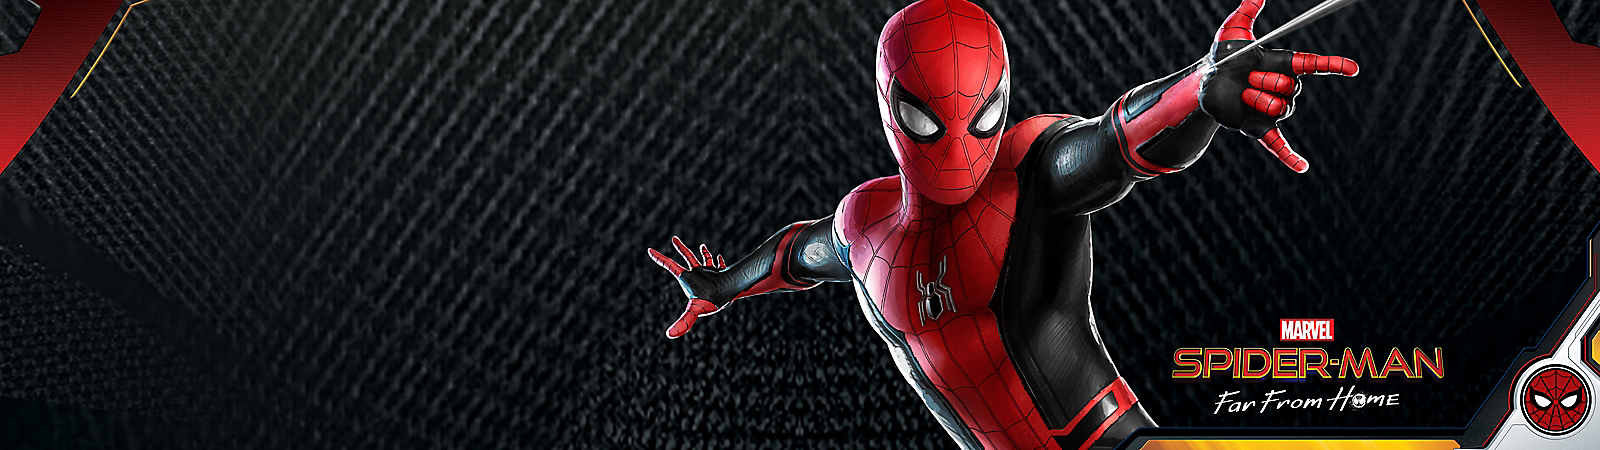 Background image of Spider-Man: Far From Home